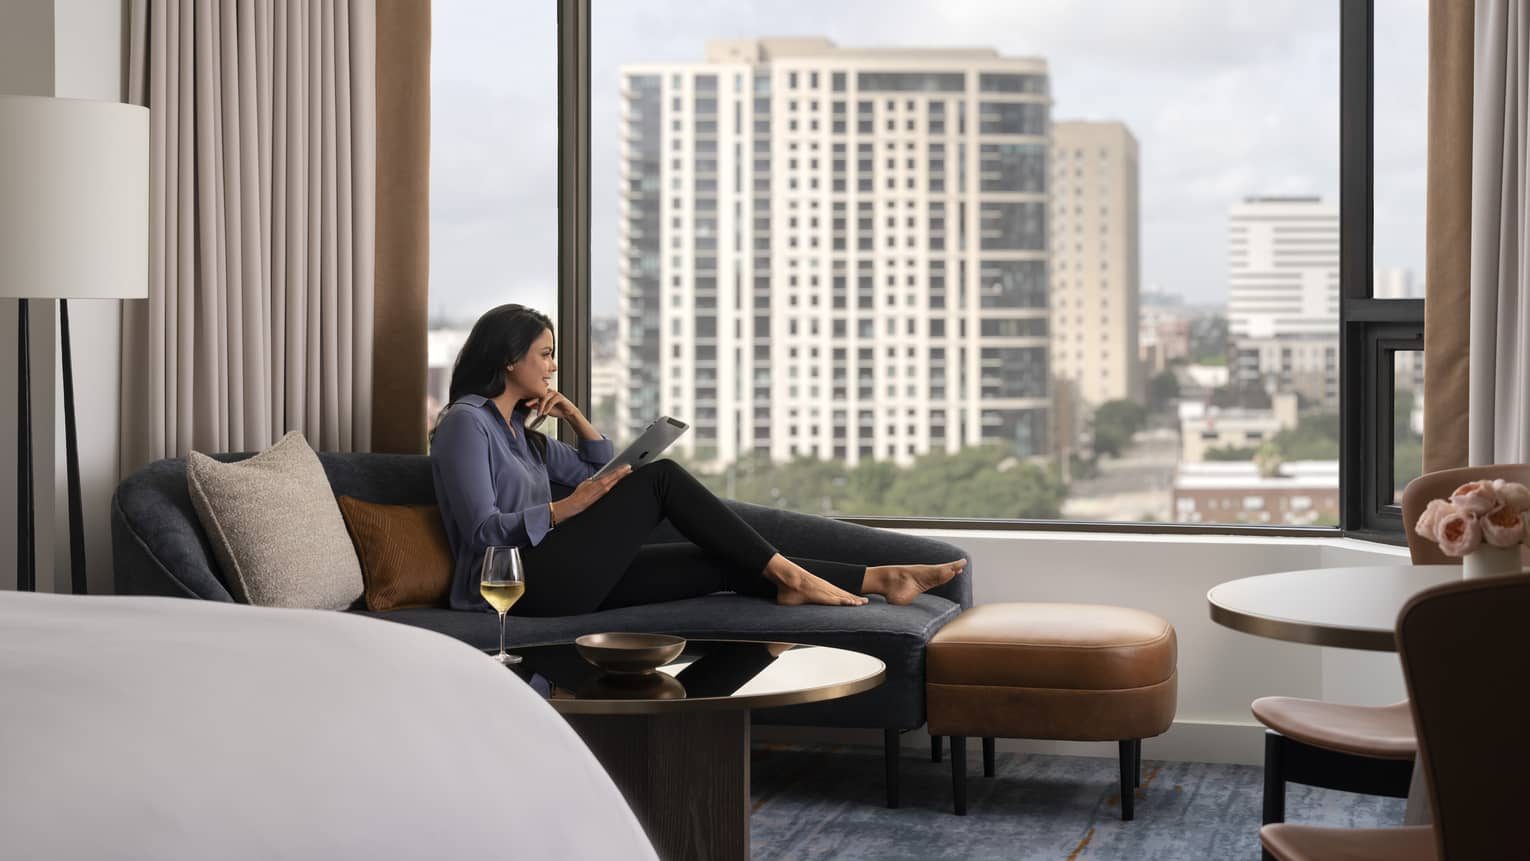 A woman lounging in a hotel room while looking out a large window.